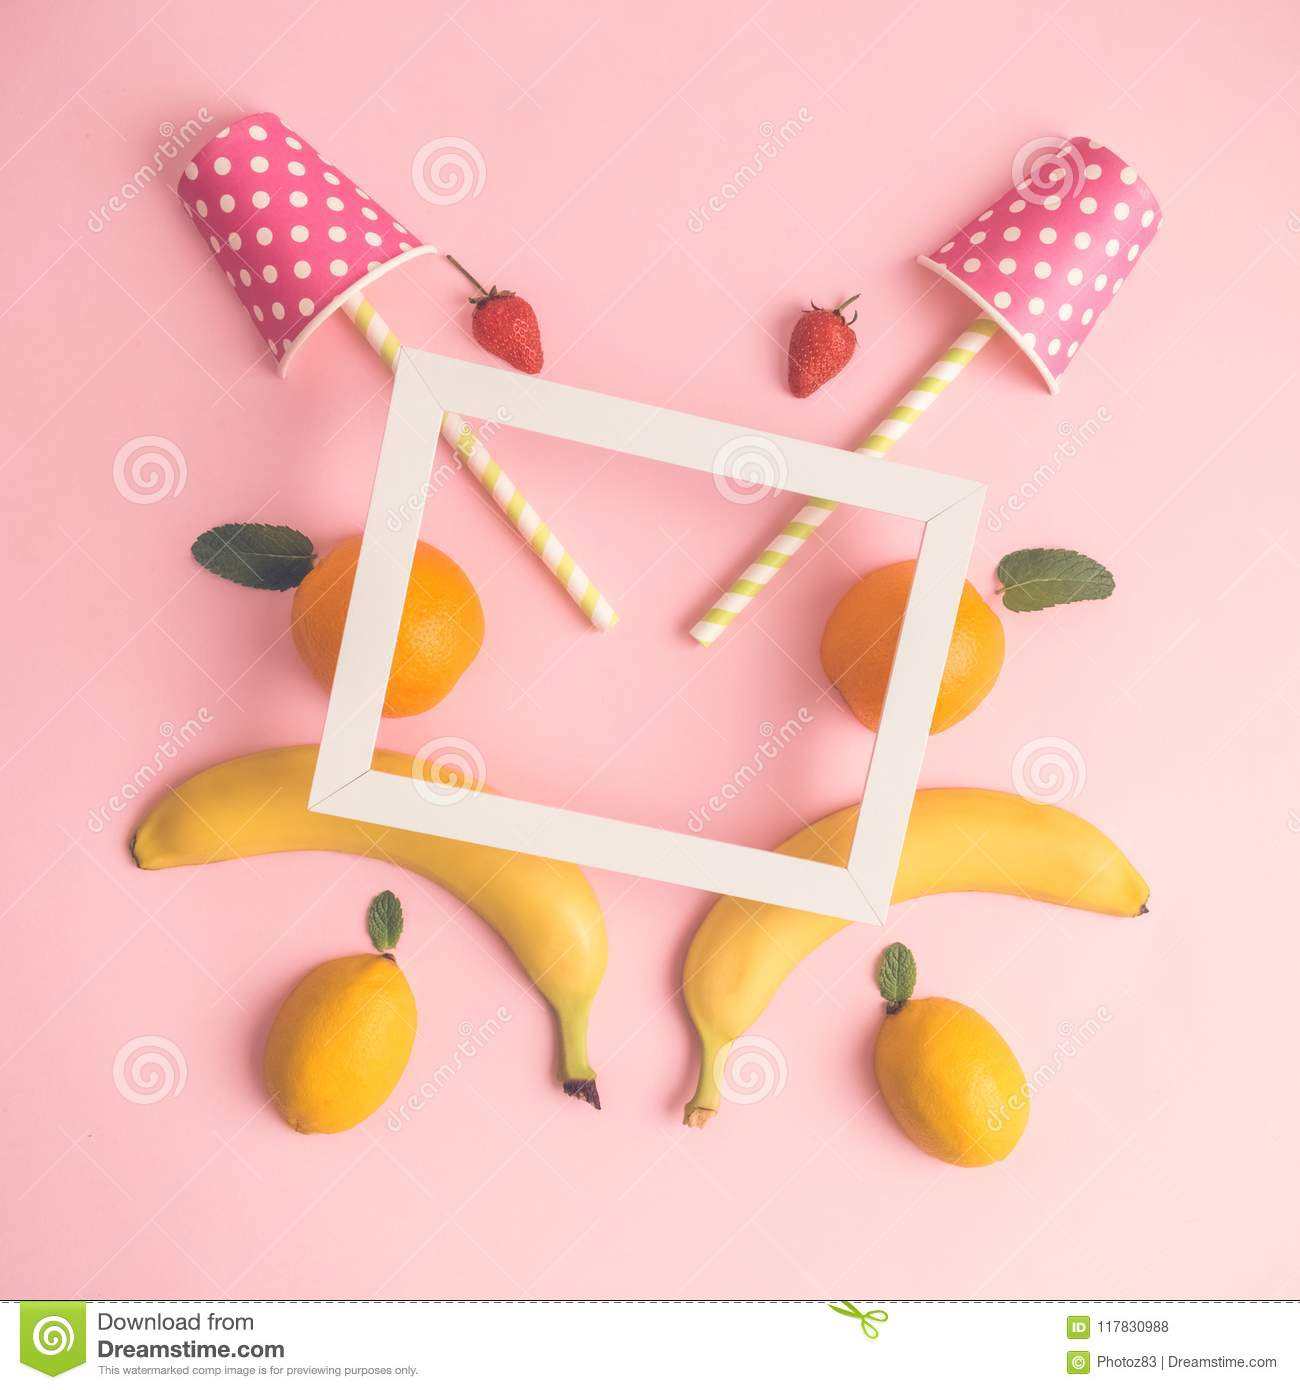 High angle view of fruits, paper cups with drinking straws and photo frame abstract.